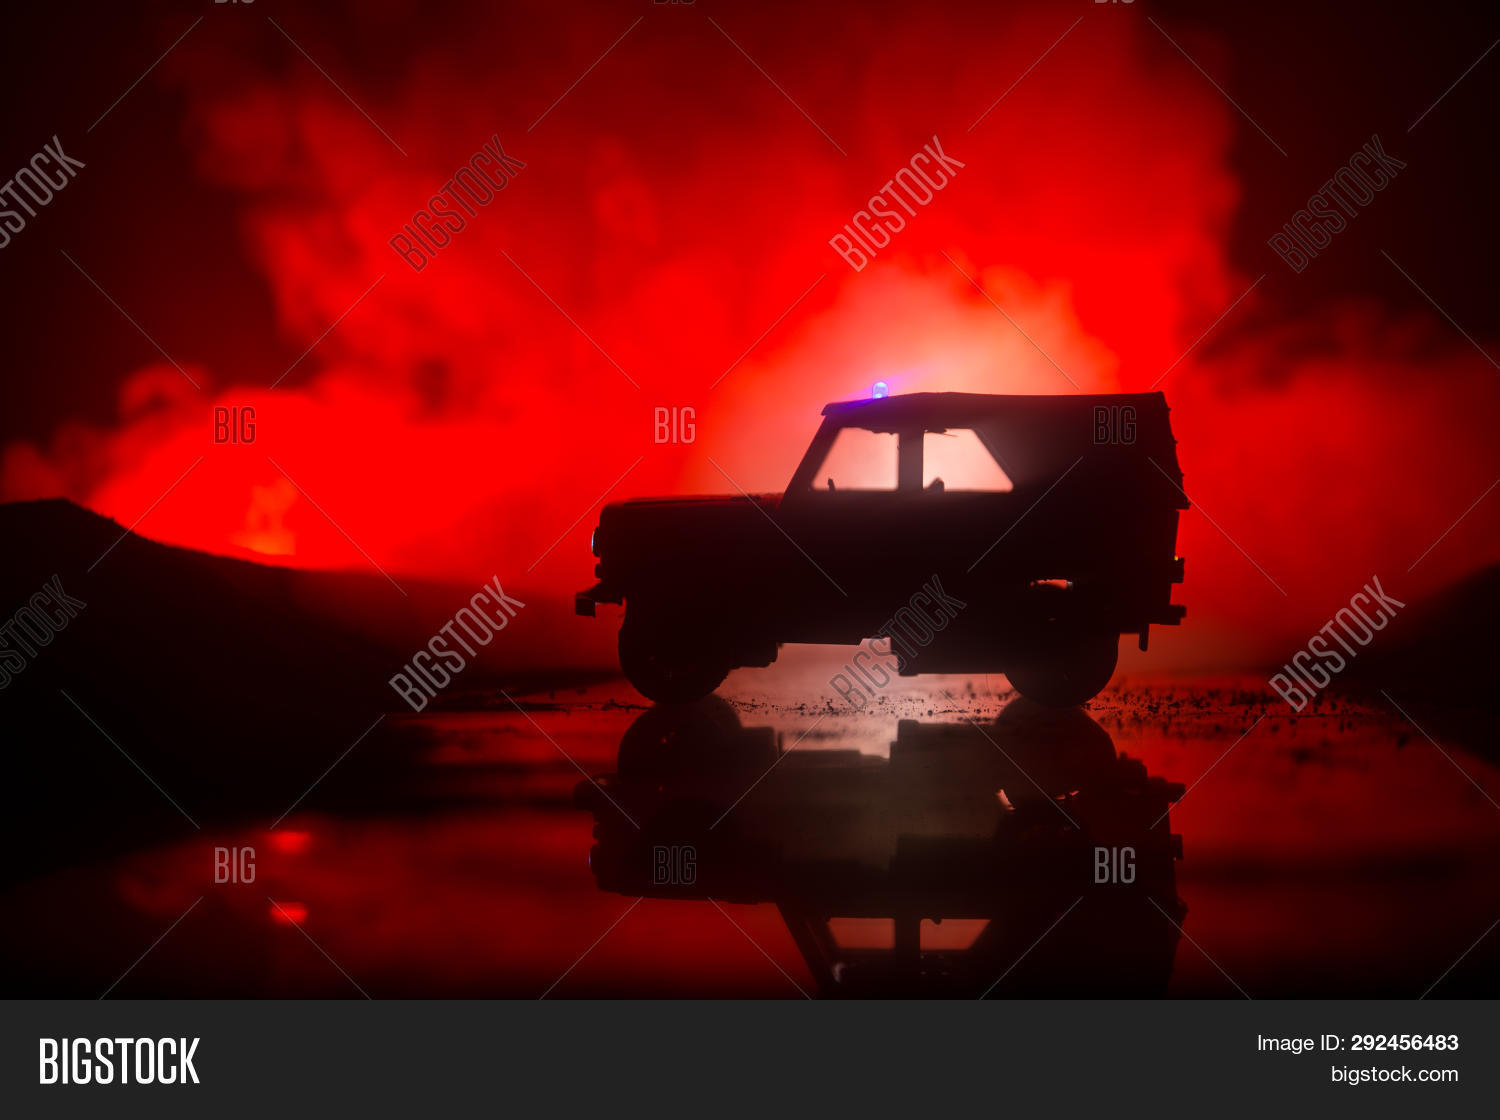 Police Cars Night Image Photo Free Trial Bigstock